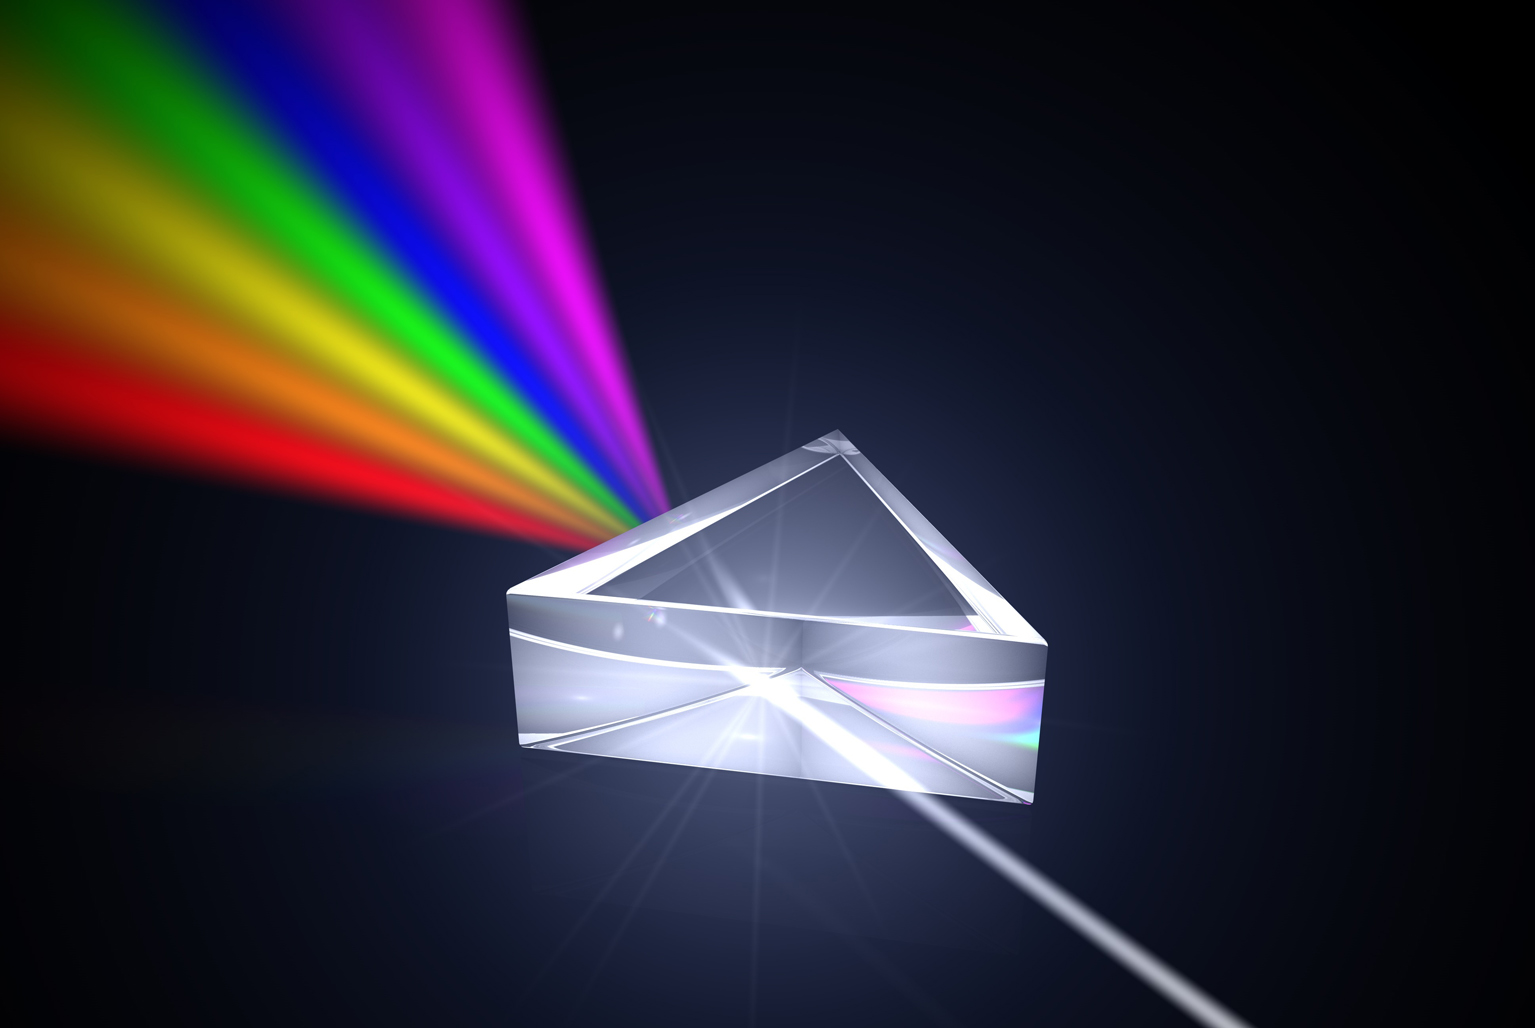 light split into spectrum by prism